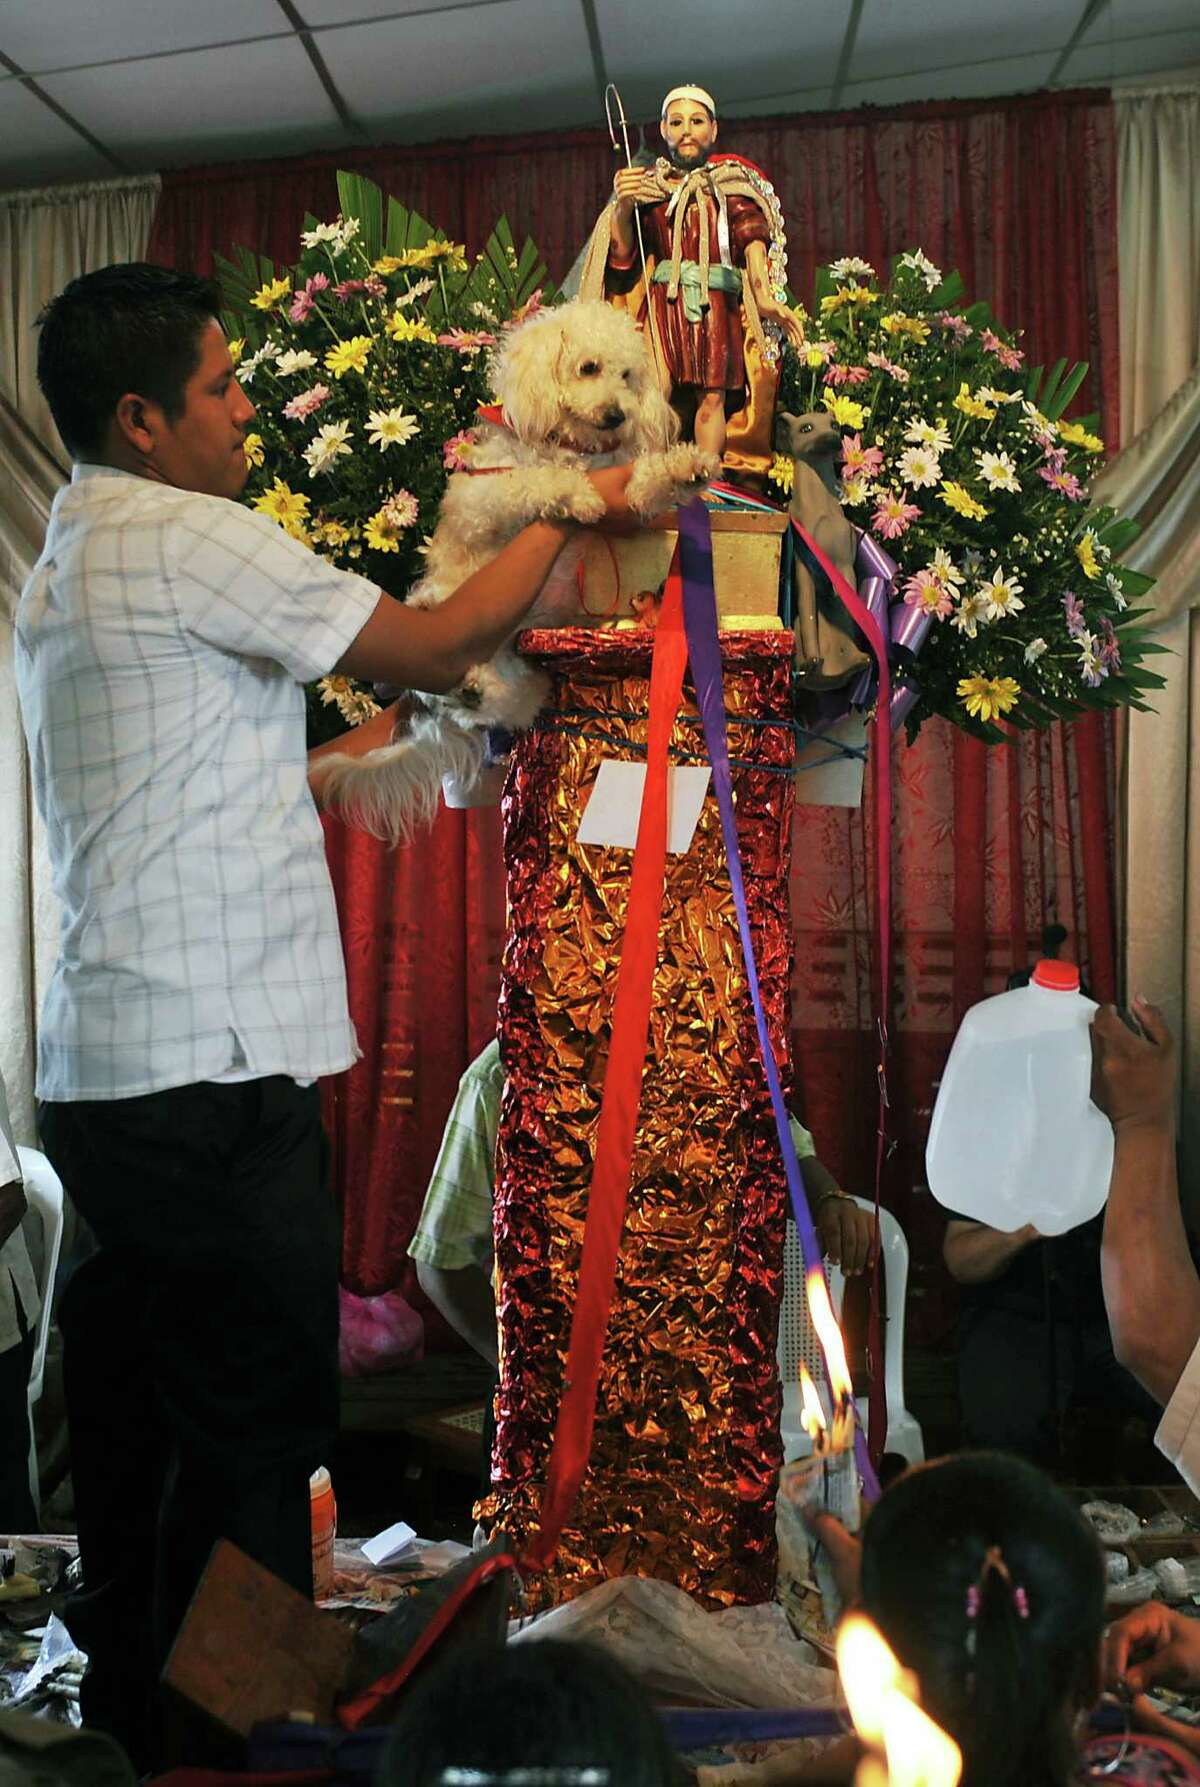 A parishioner holds a dog in front of the image of San Lazaro, during a mass in his honor, on March 17, 2013, in Monimbo neighborhood, in Masaya, 30km south of Managua. According to tradition in Nicaragua, faithfuls ask for the health of their dogs at San Lazaro and they pay these favors back bringing them dressed in costumes to attend mass in honor of the saint.